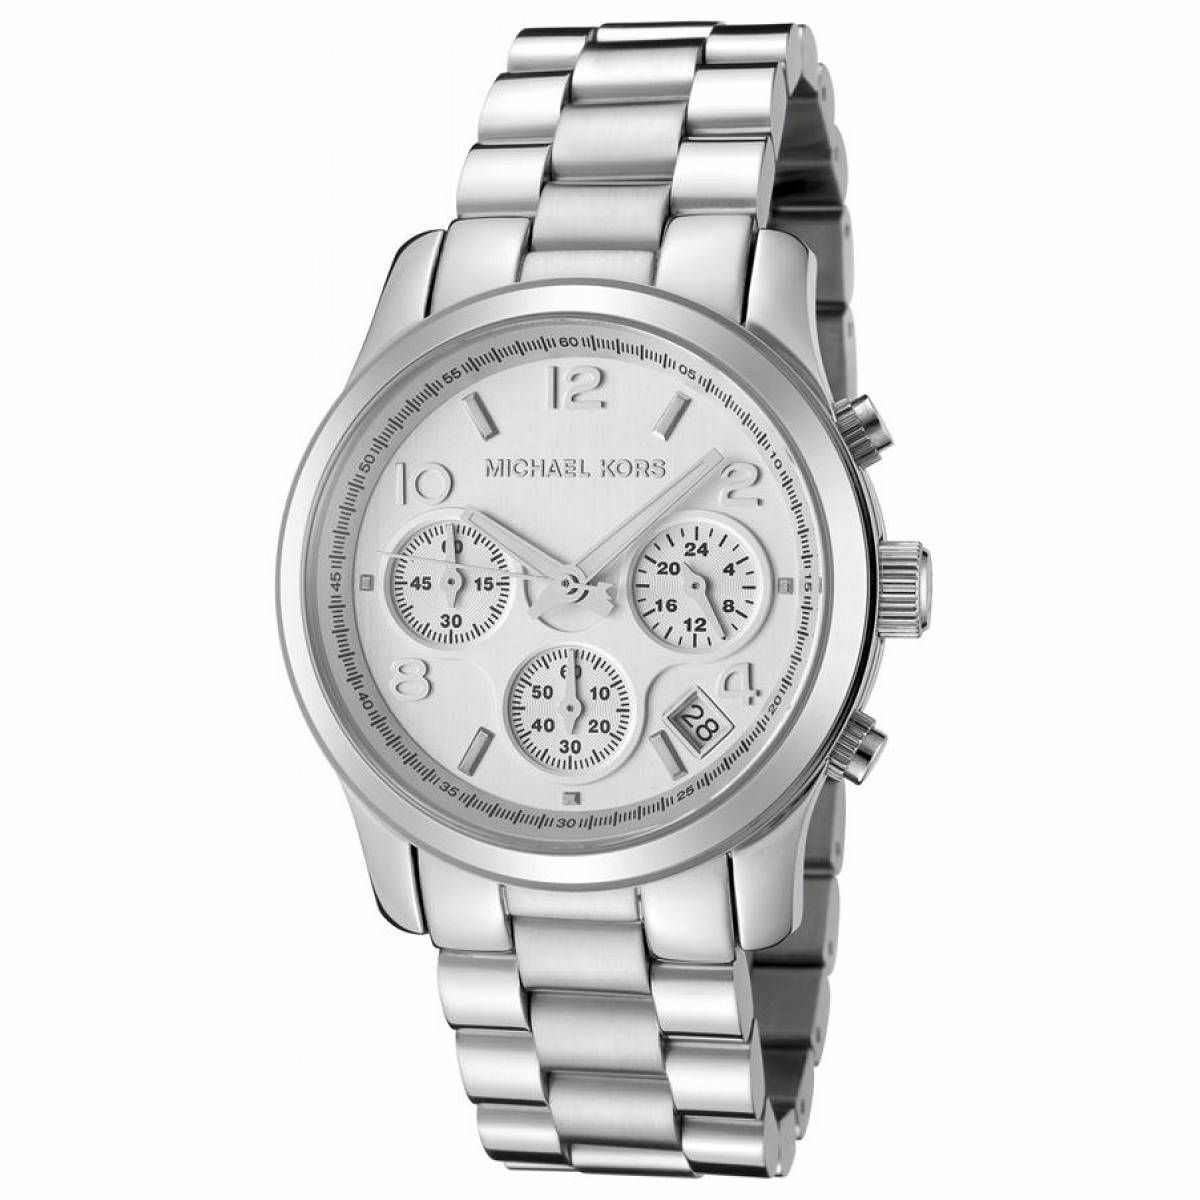 8d19e36cb7f5 Michael Kors Ladies Chronograph Watch MK5076